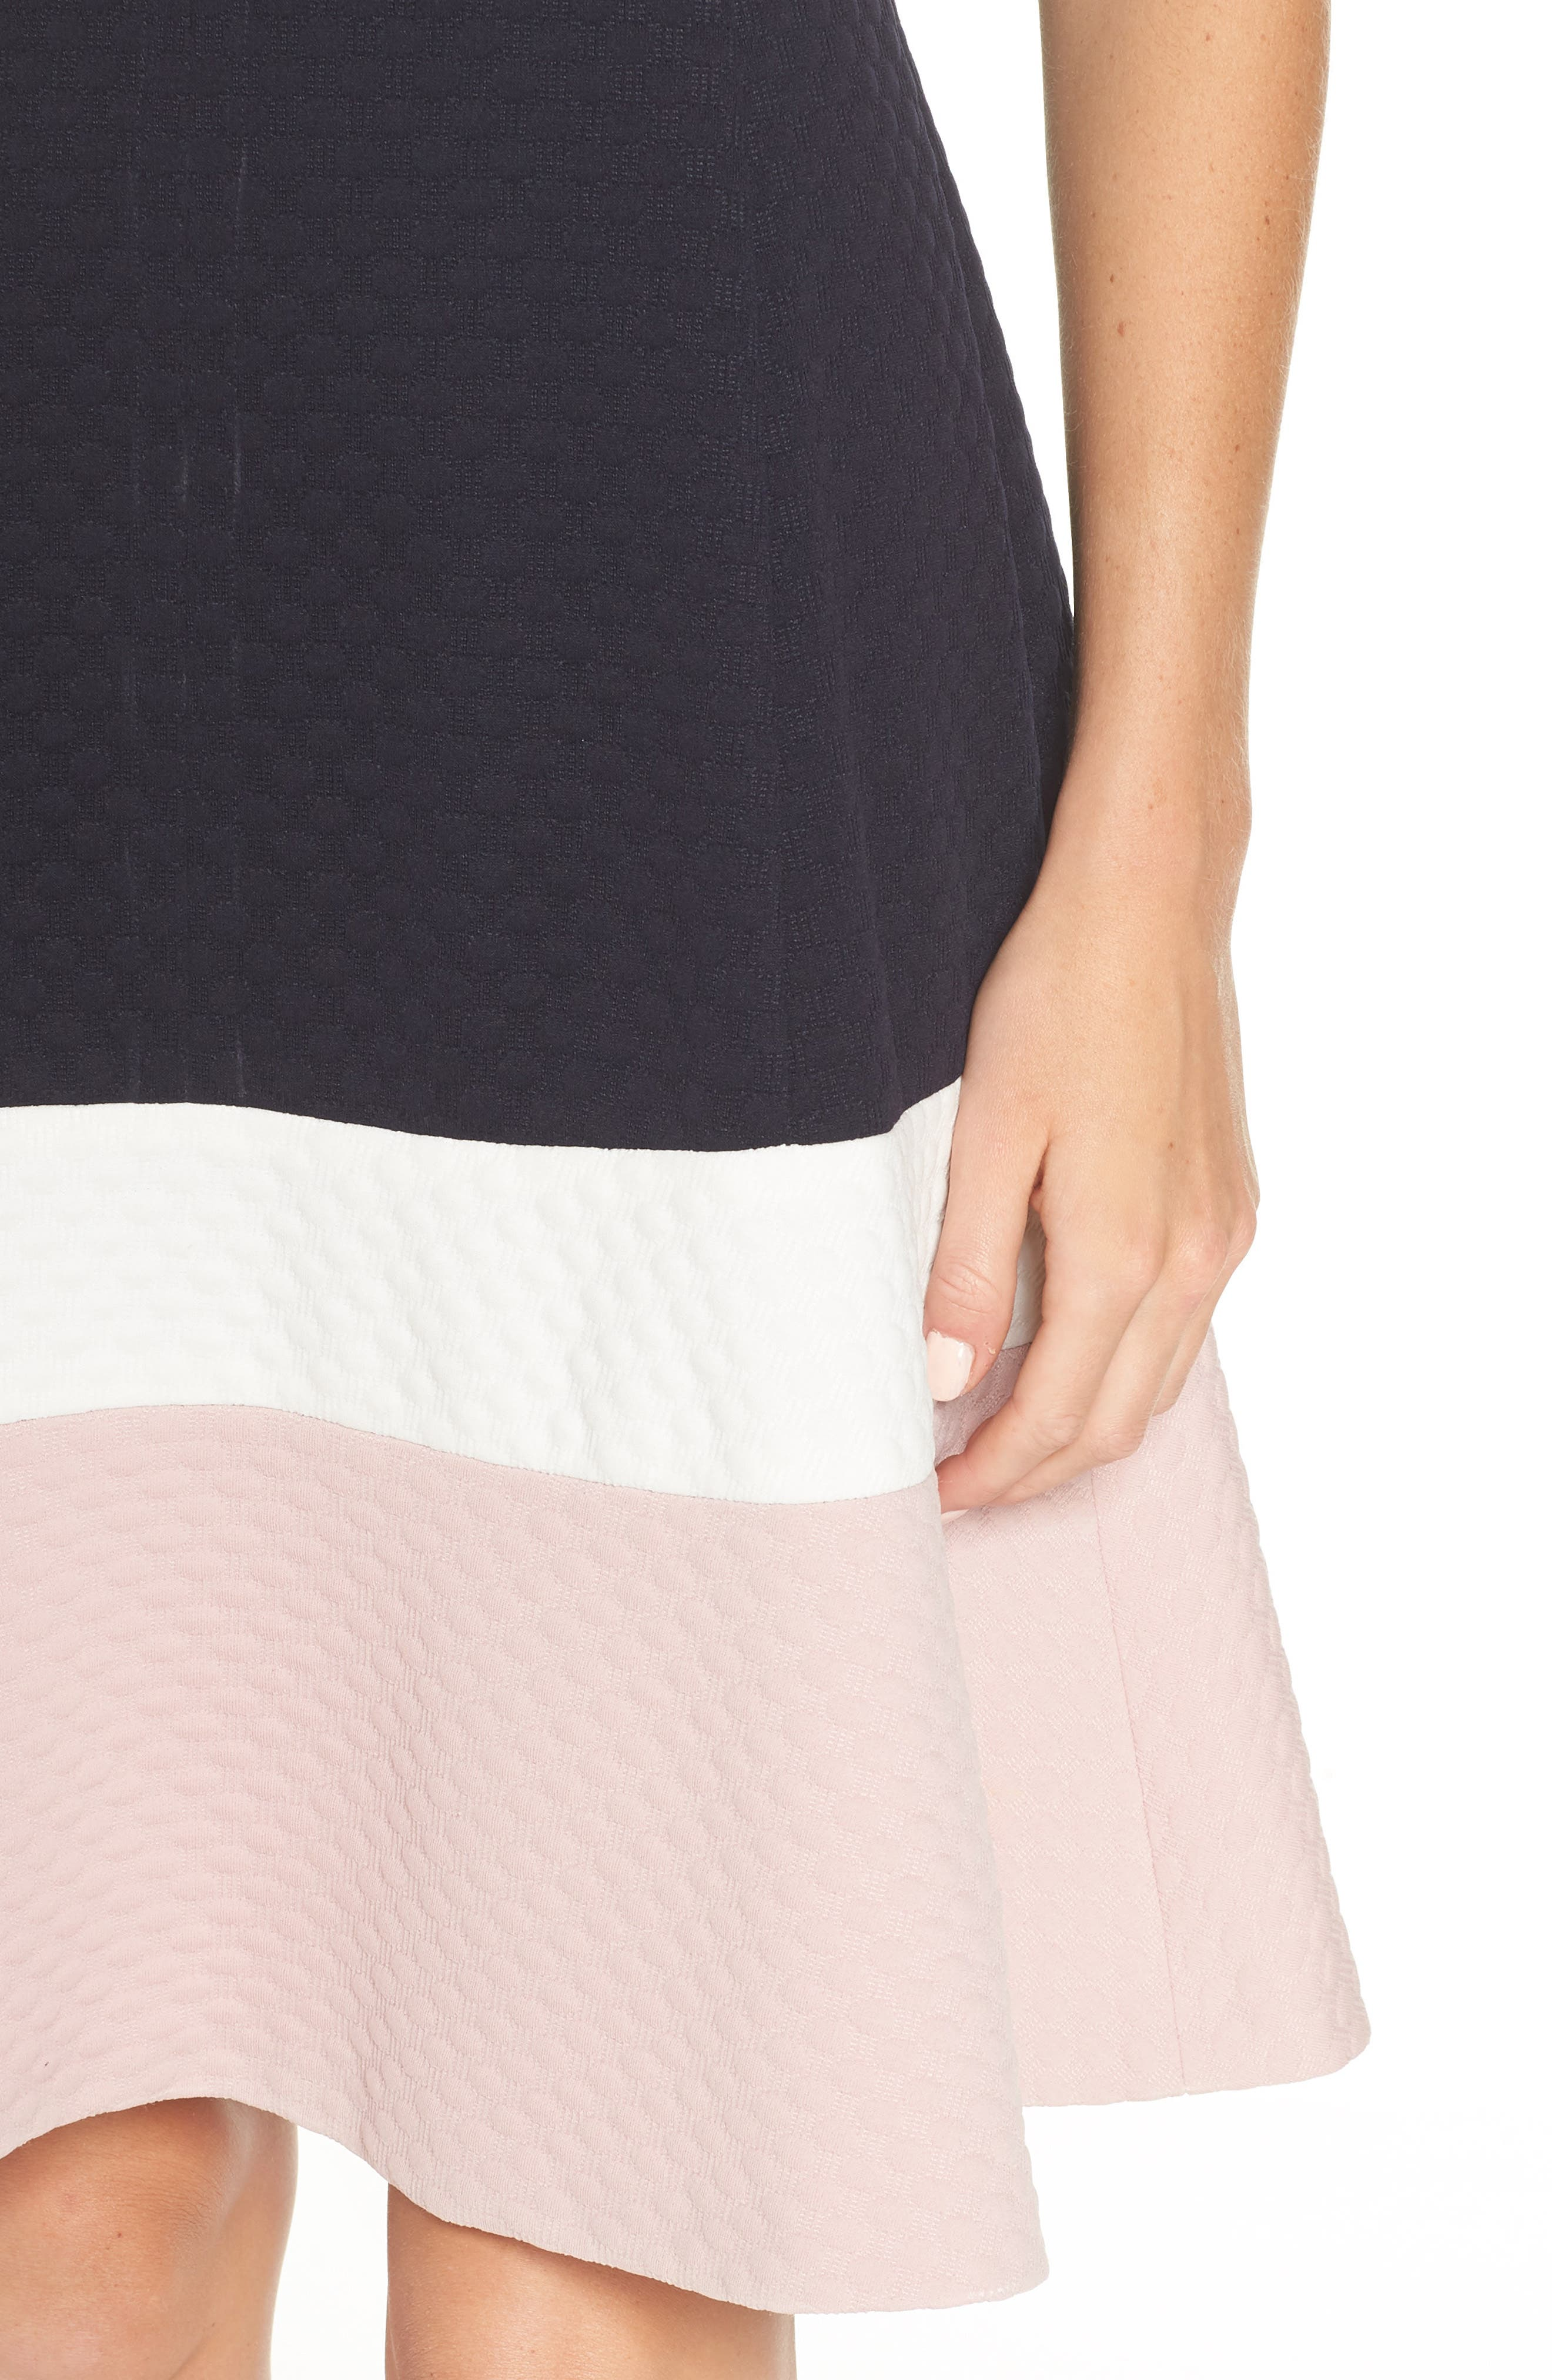 Colorblock Texture Knit Fit & Flare Dress,                             Alternate thumbnail 4, color,                             NAVY/ IVORY/ BLUSH